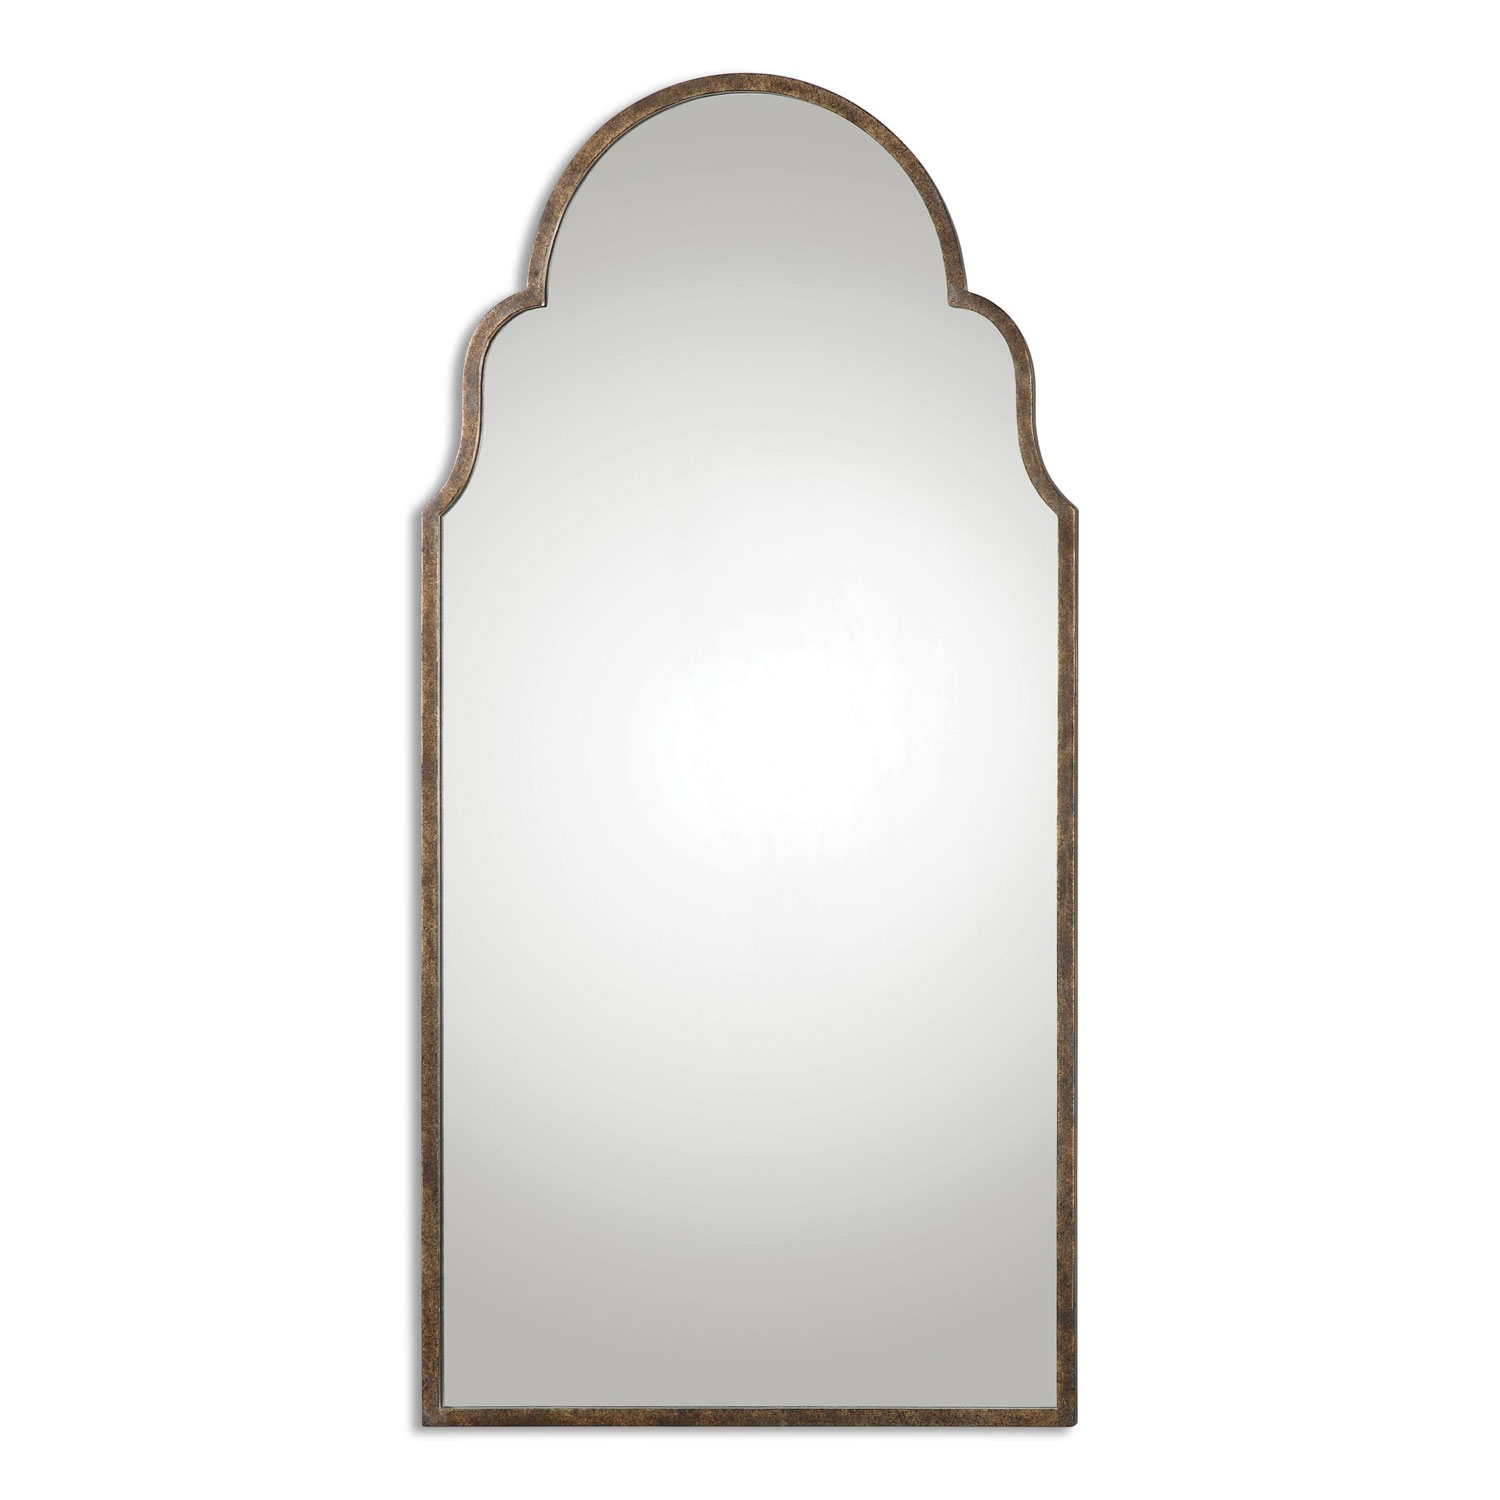 Black Arched Wall Mirrors Black Arched Wall Mirrors arched crowned mirrors bellacor 1500 X 1500